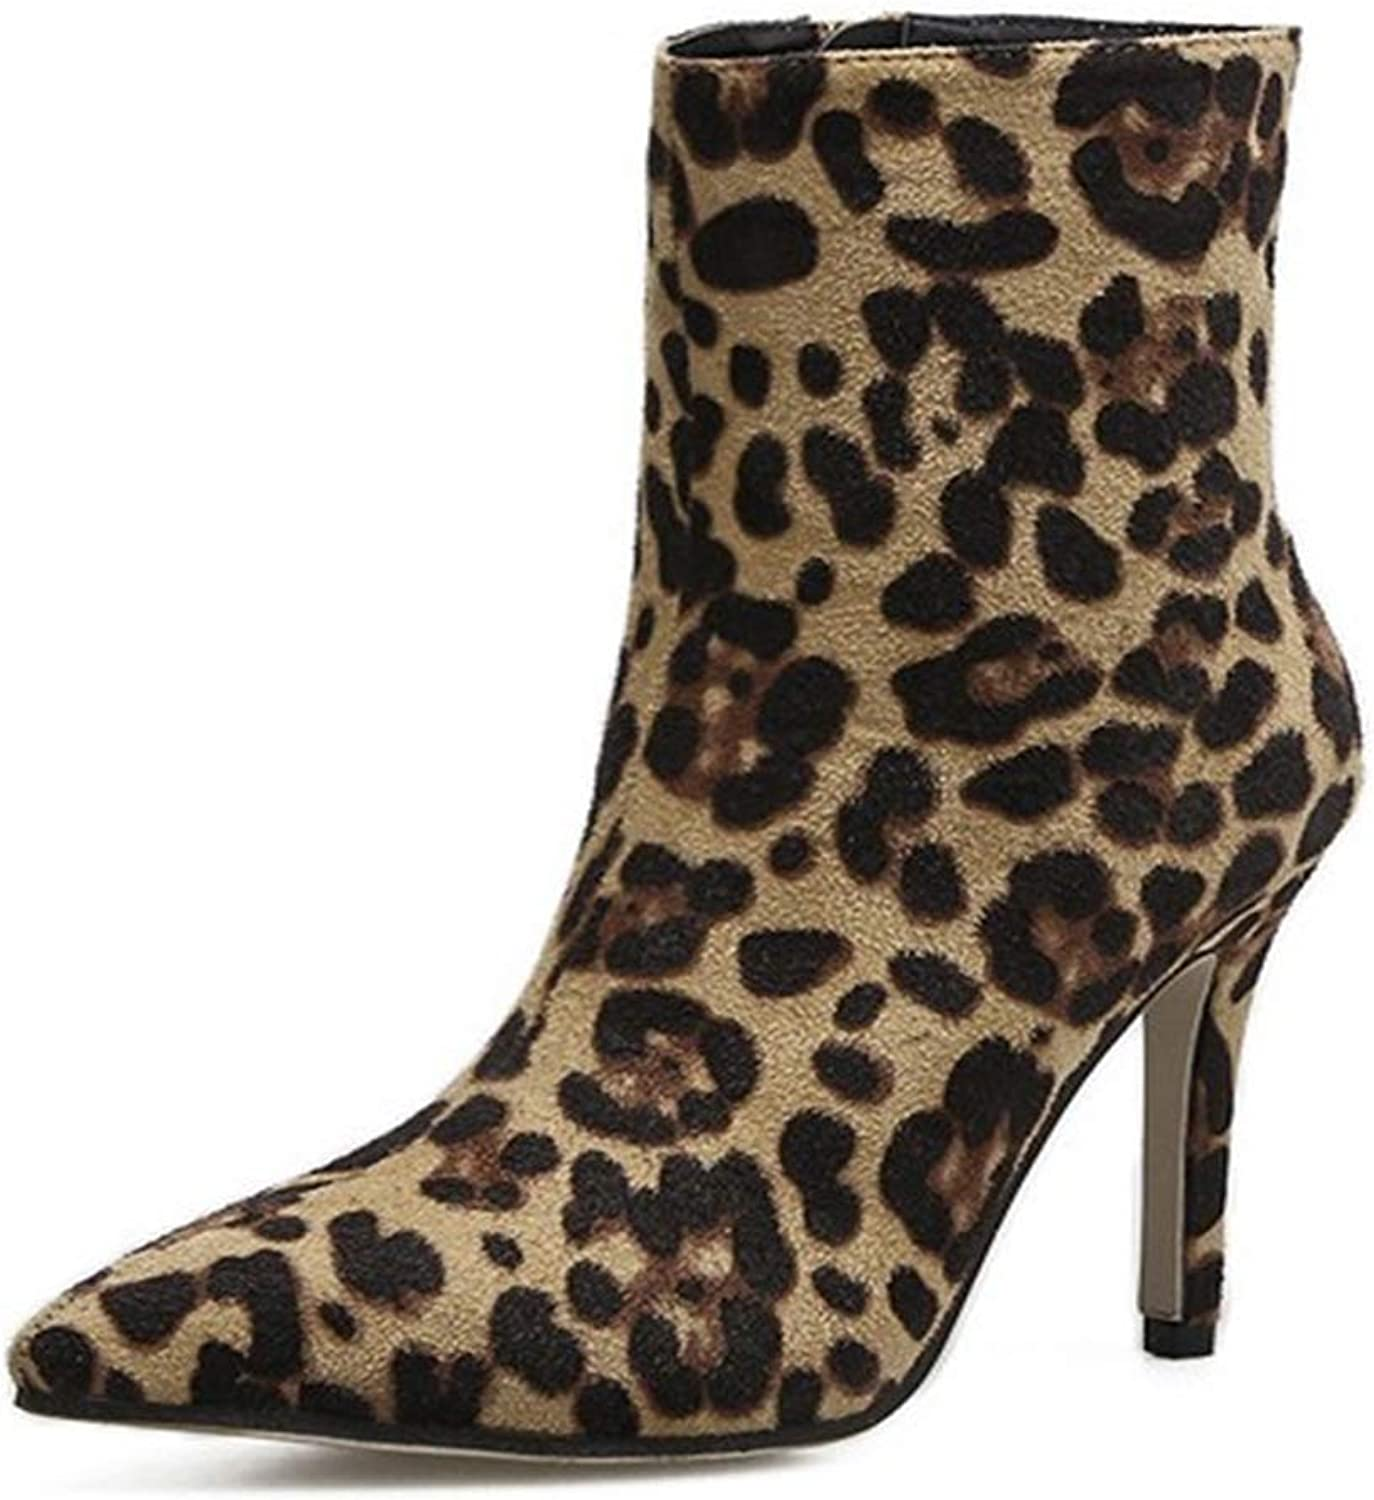 Winter Ladies Personality Leopard Booties Large Size PU Leather Warm Leather Lining